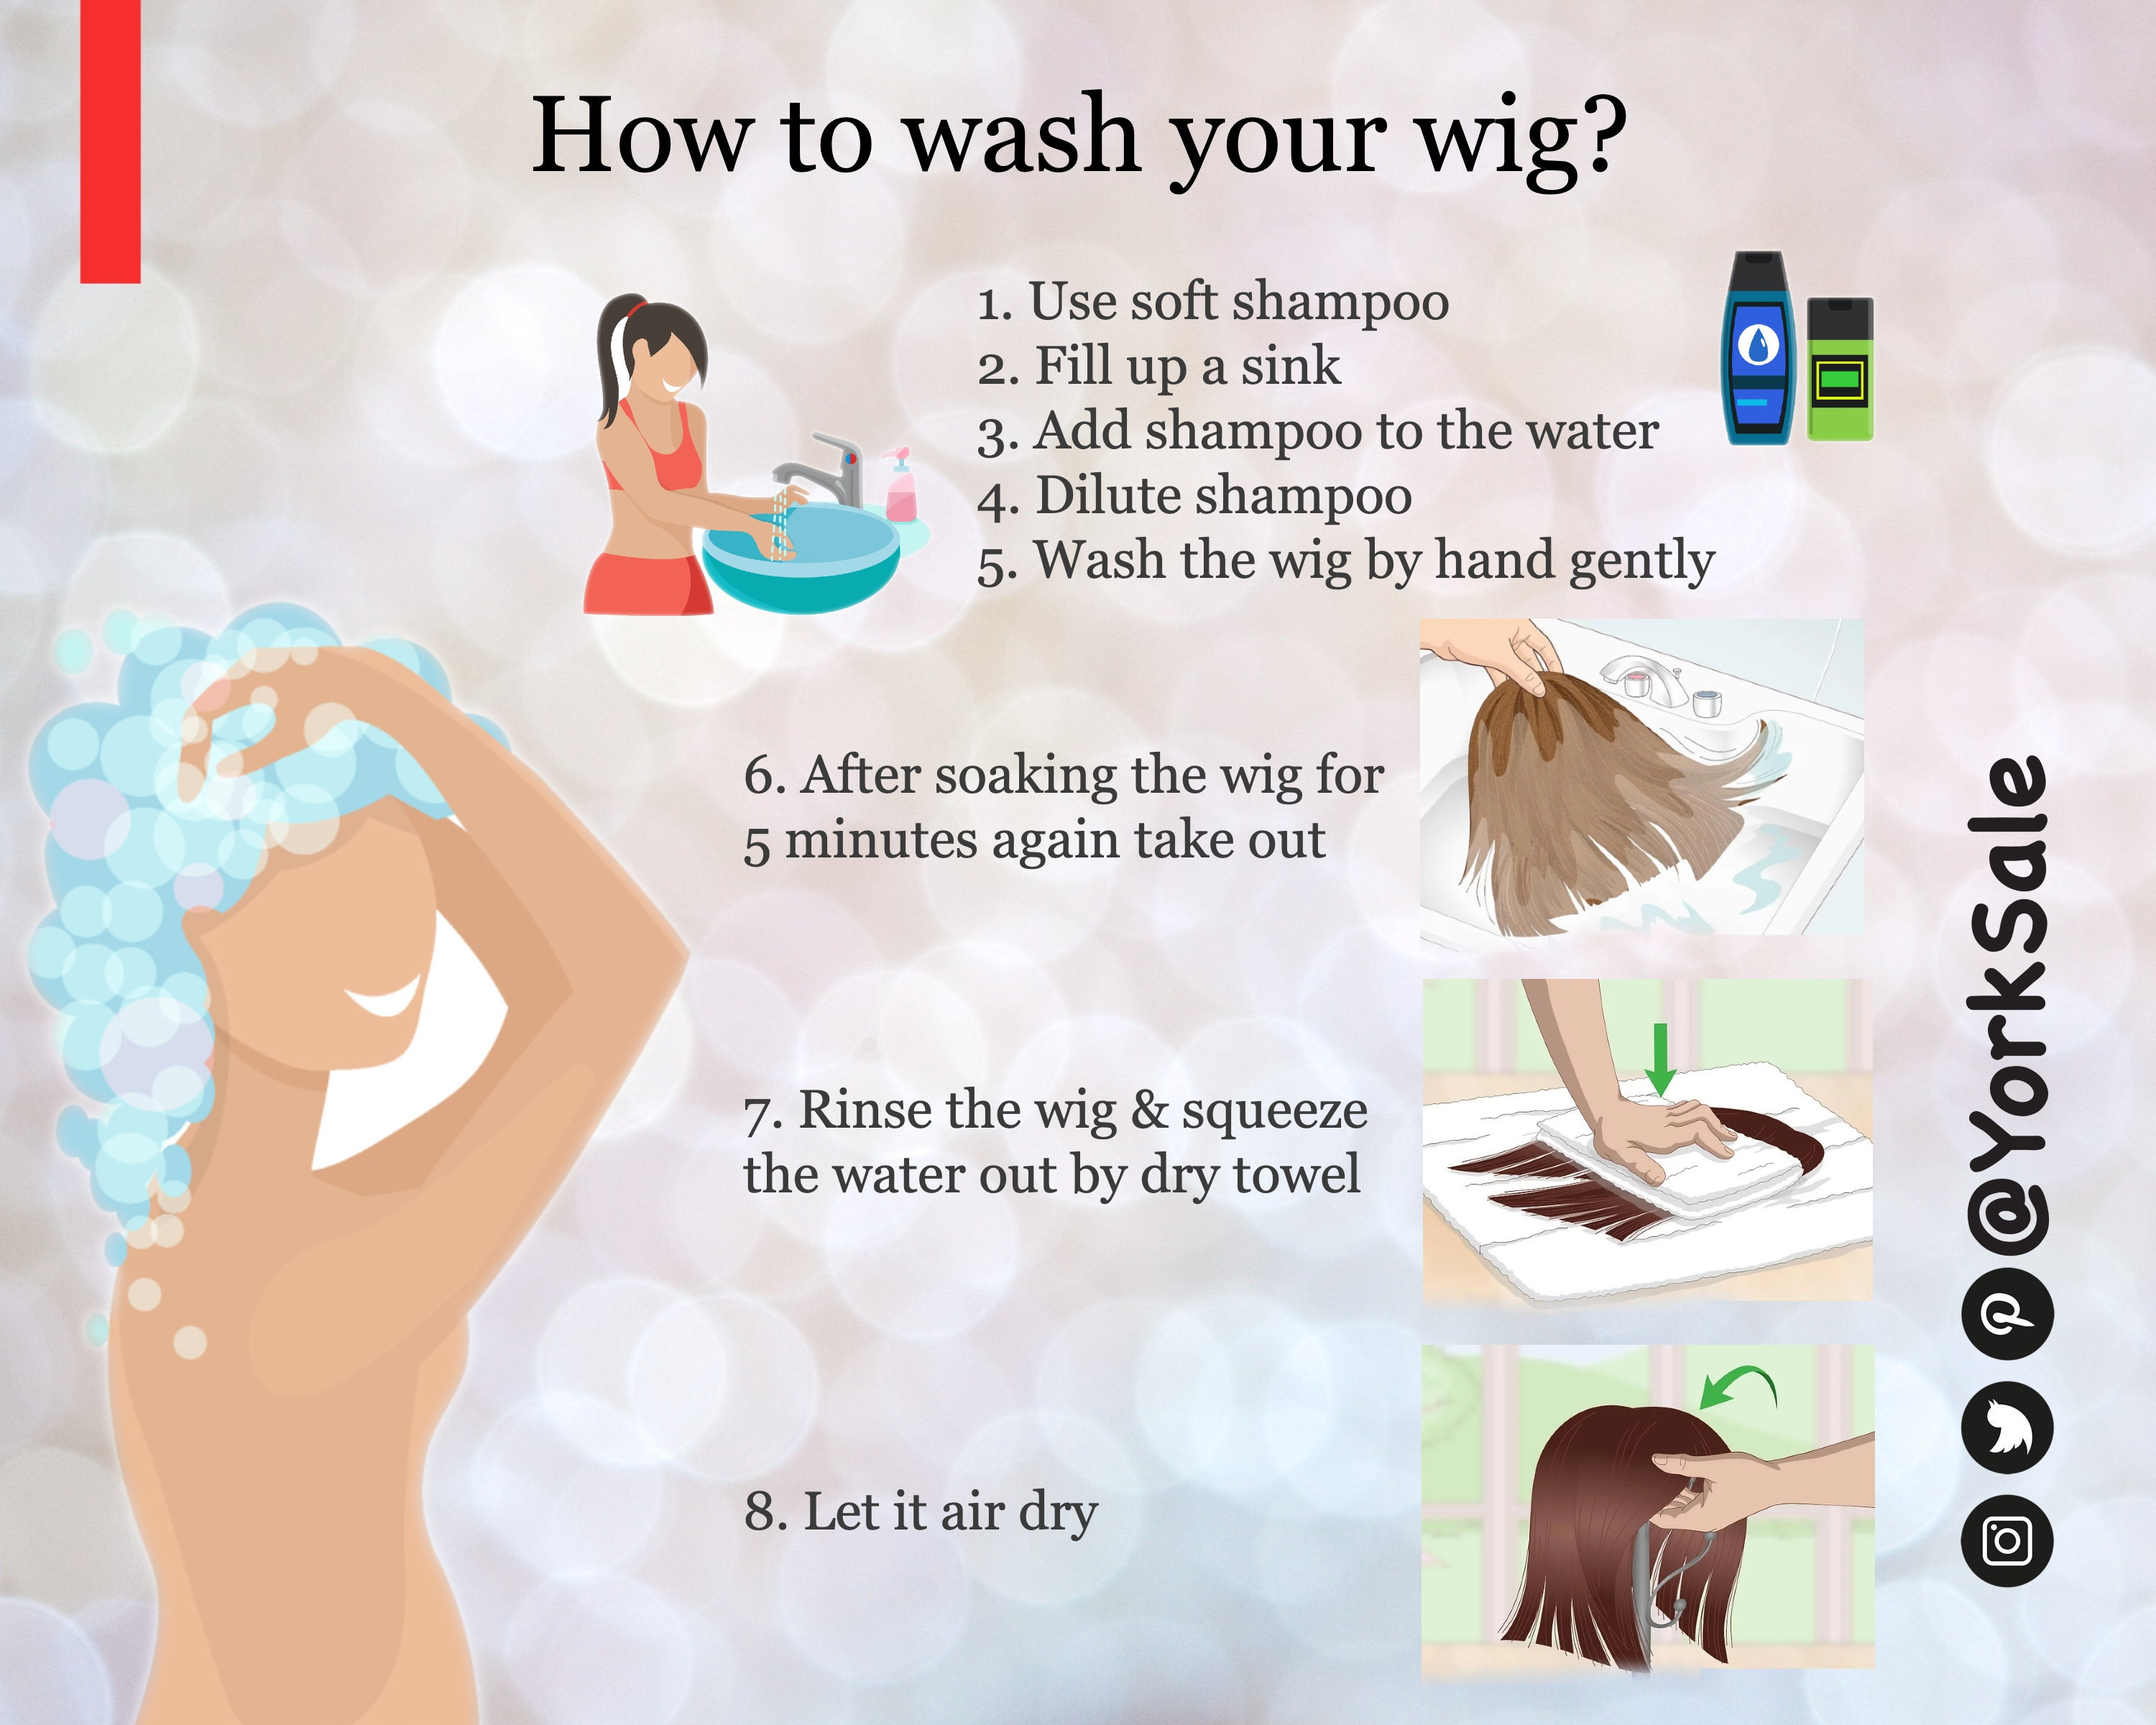 How to wash your wig!